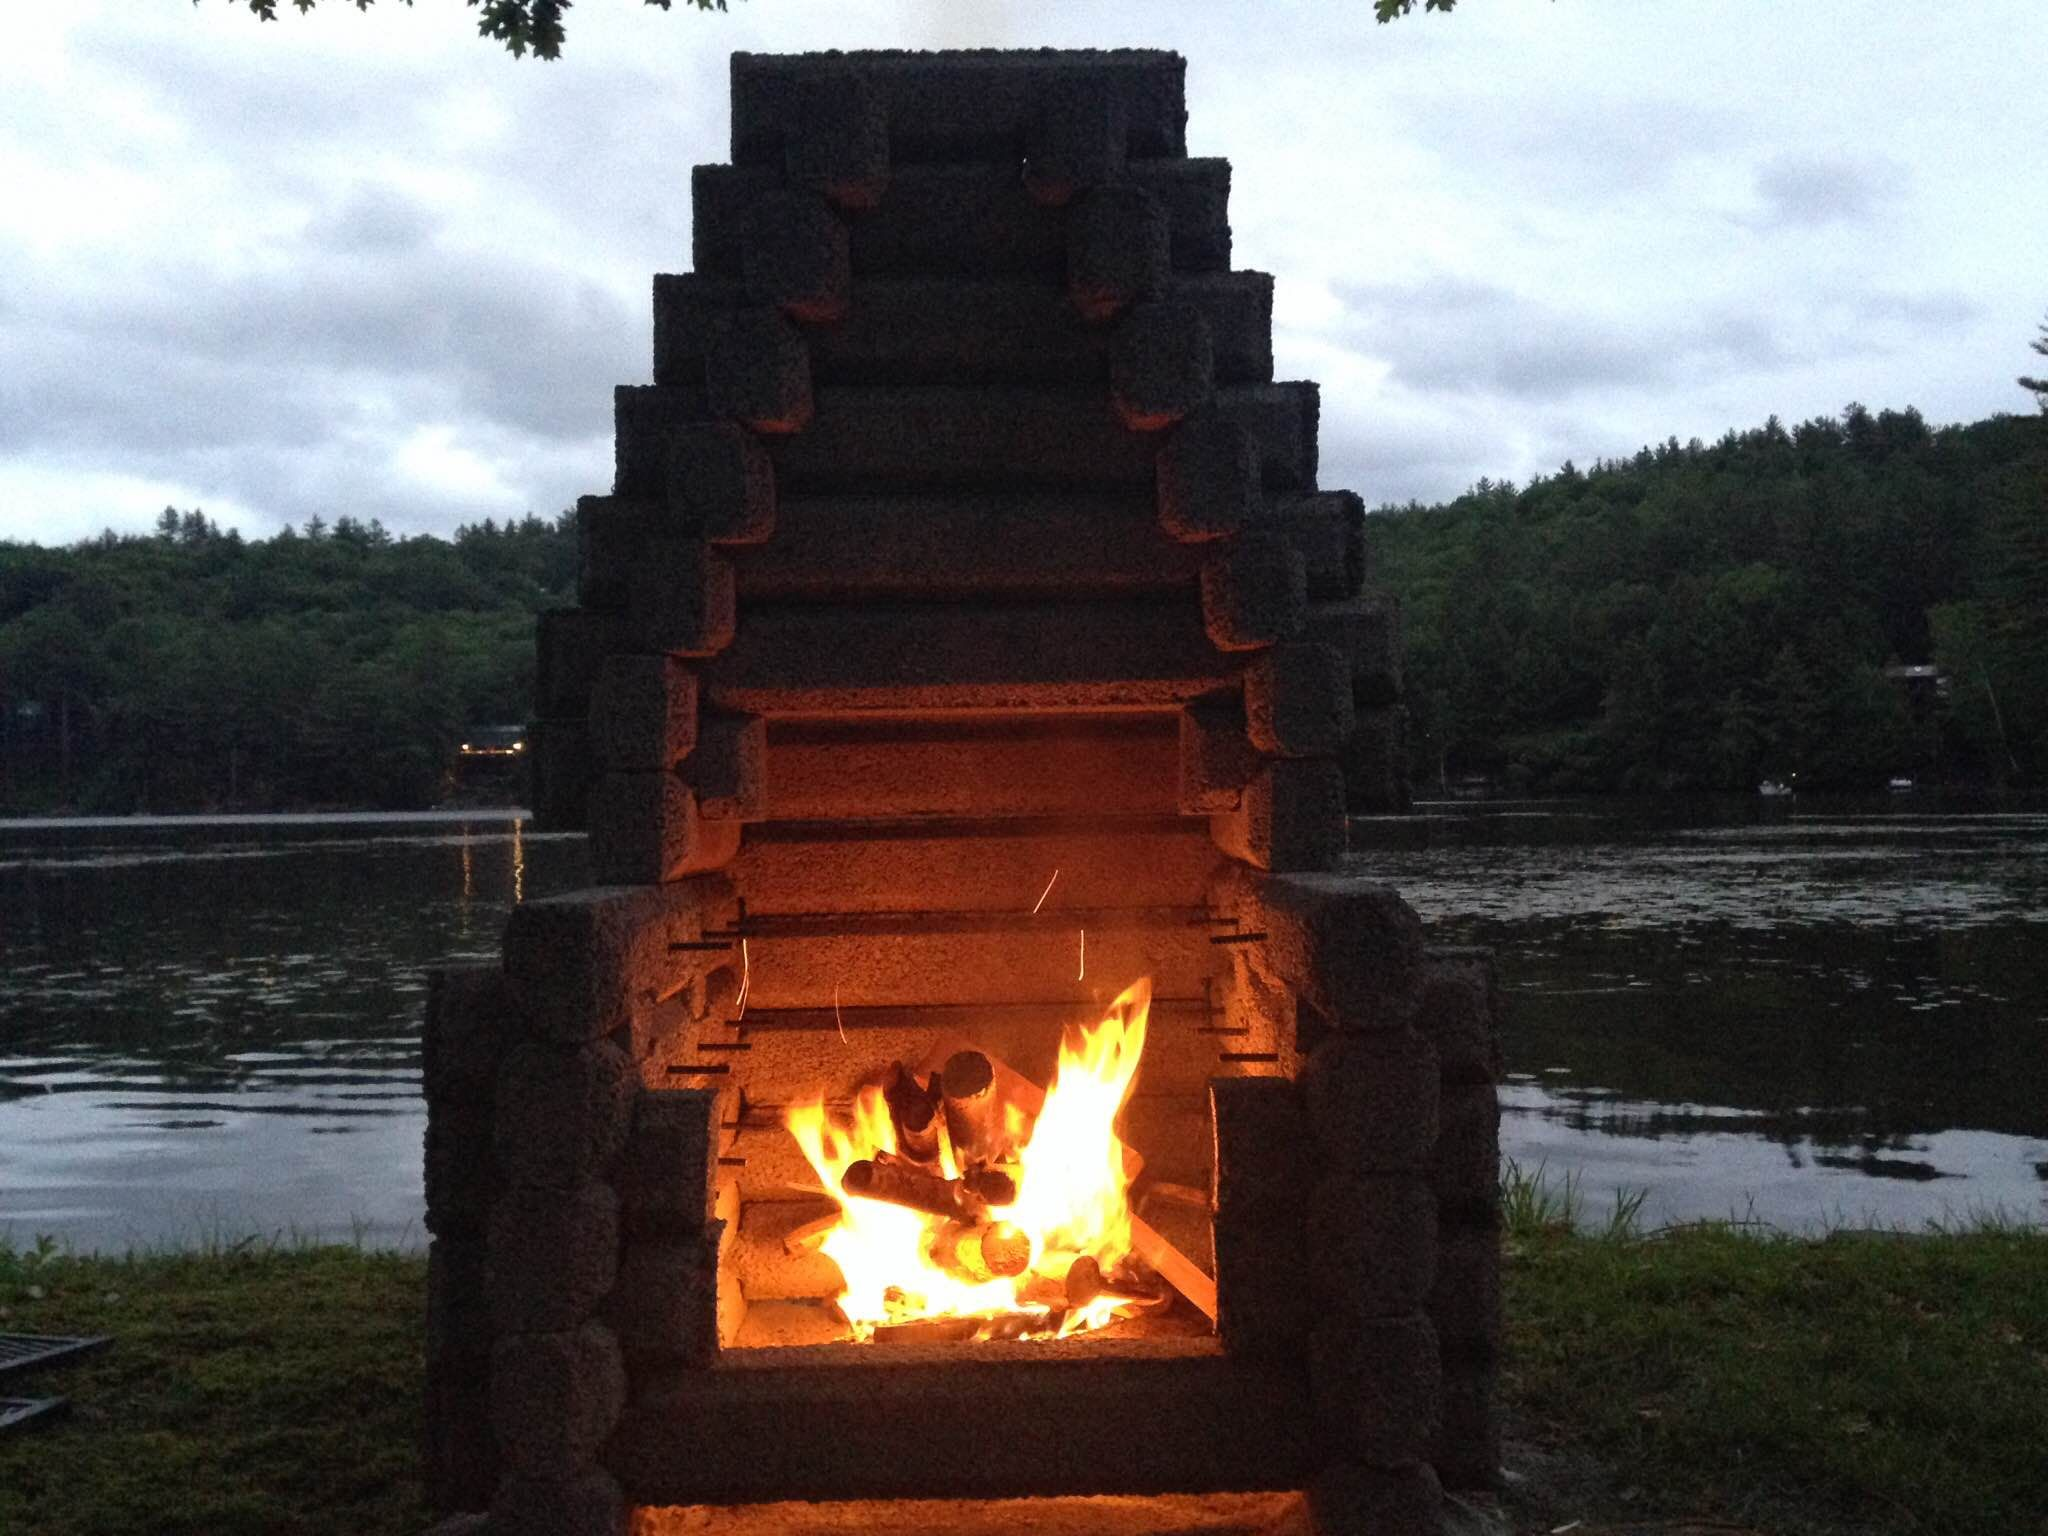 ed99654ce794a4b1e8ea6a15bee15f37 Top Result 50 Awesome Prefab Outdoor Fireplace Photography 2018 Hiw6